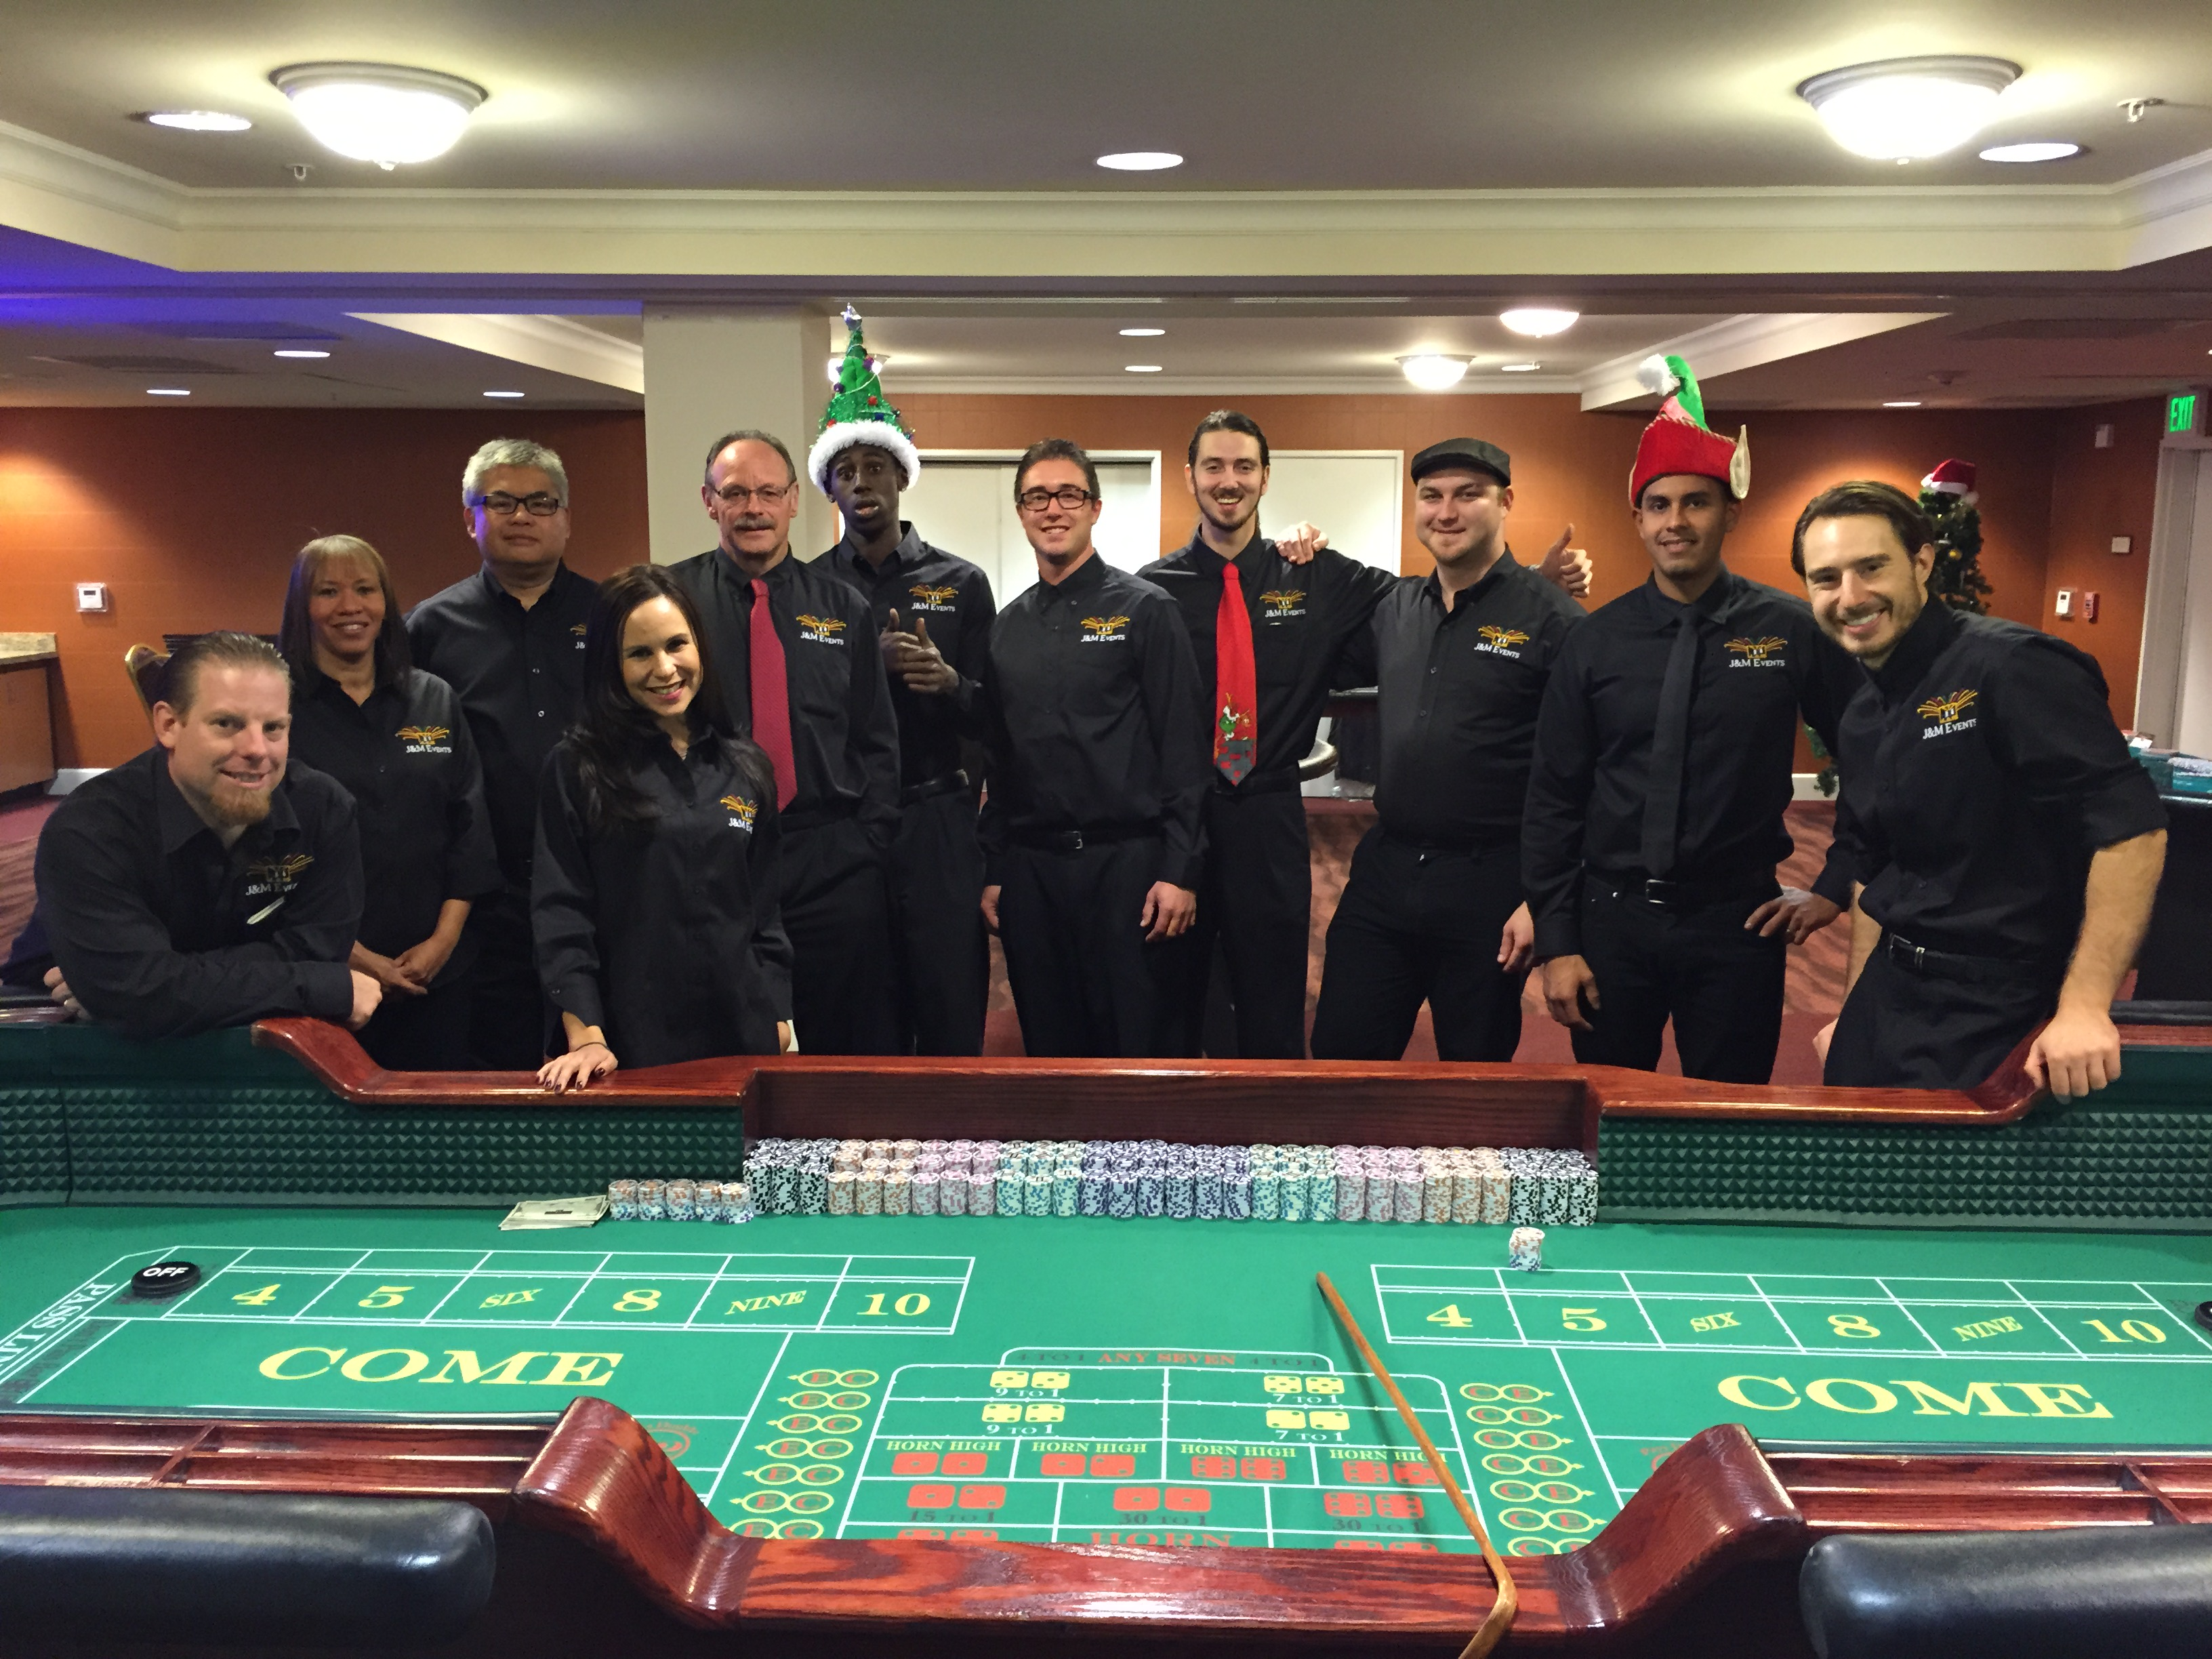 Casino Event Staff, Los Angeles CA